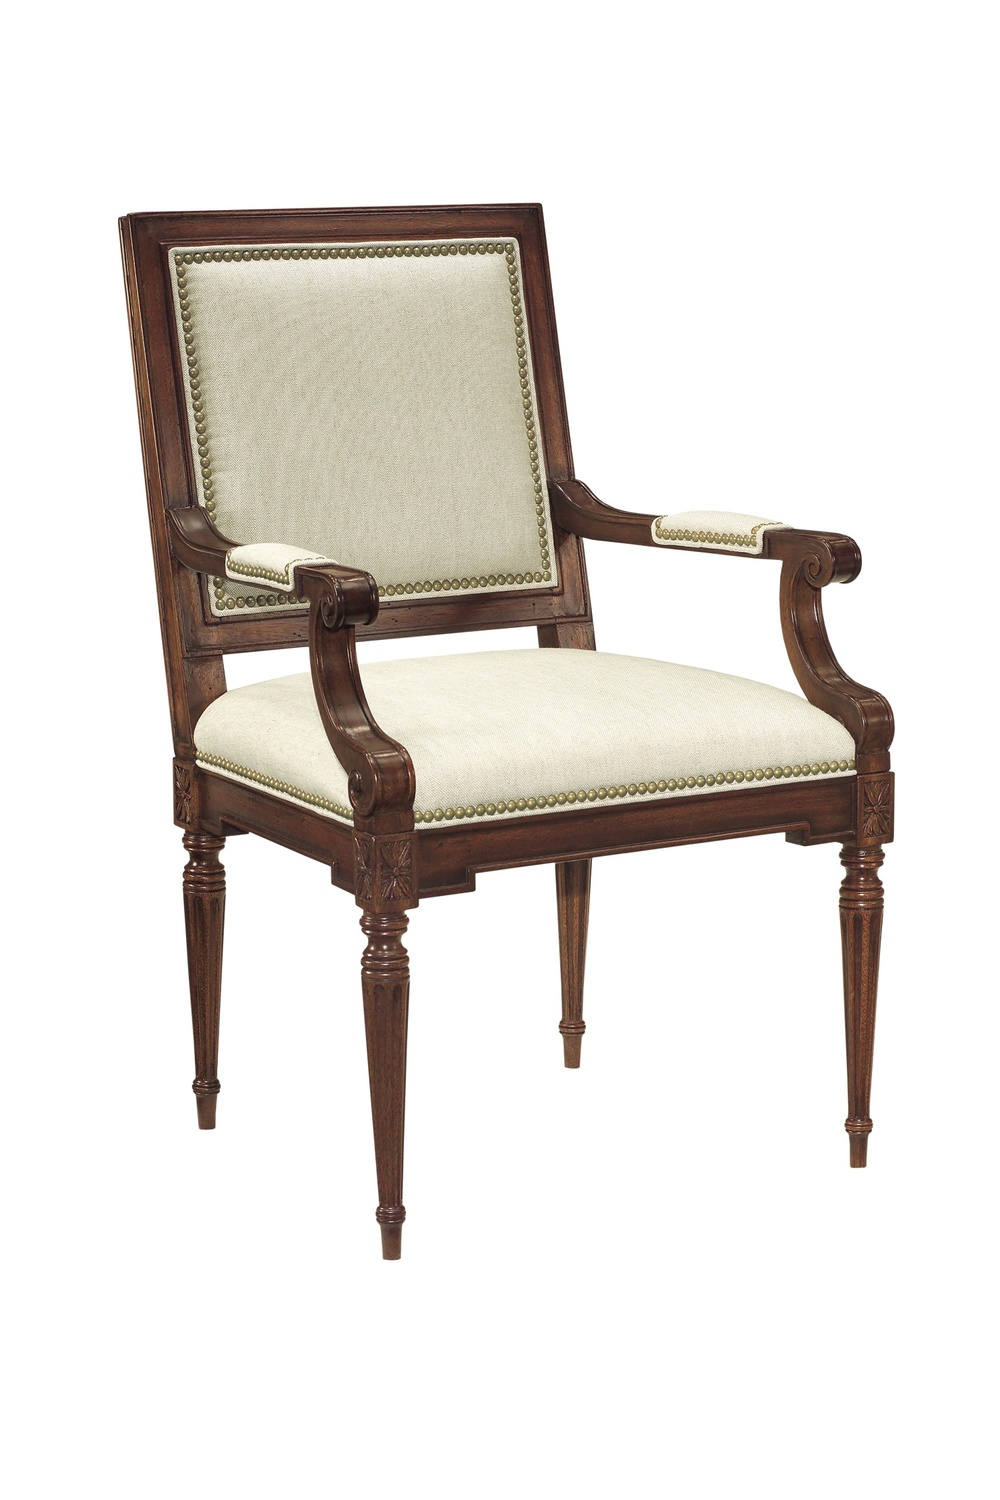 Hickory Chair - Louis XVI Square Back Arm Chair